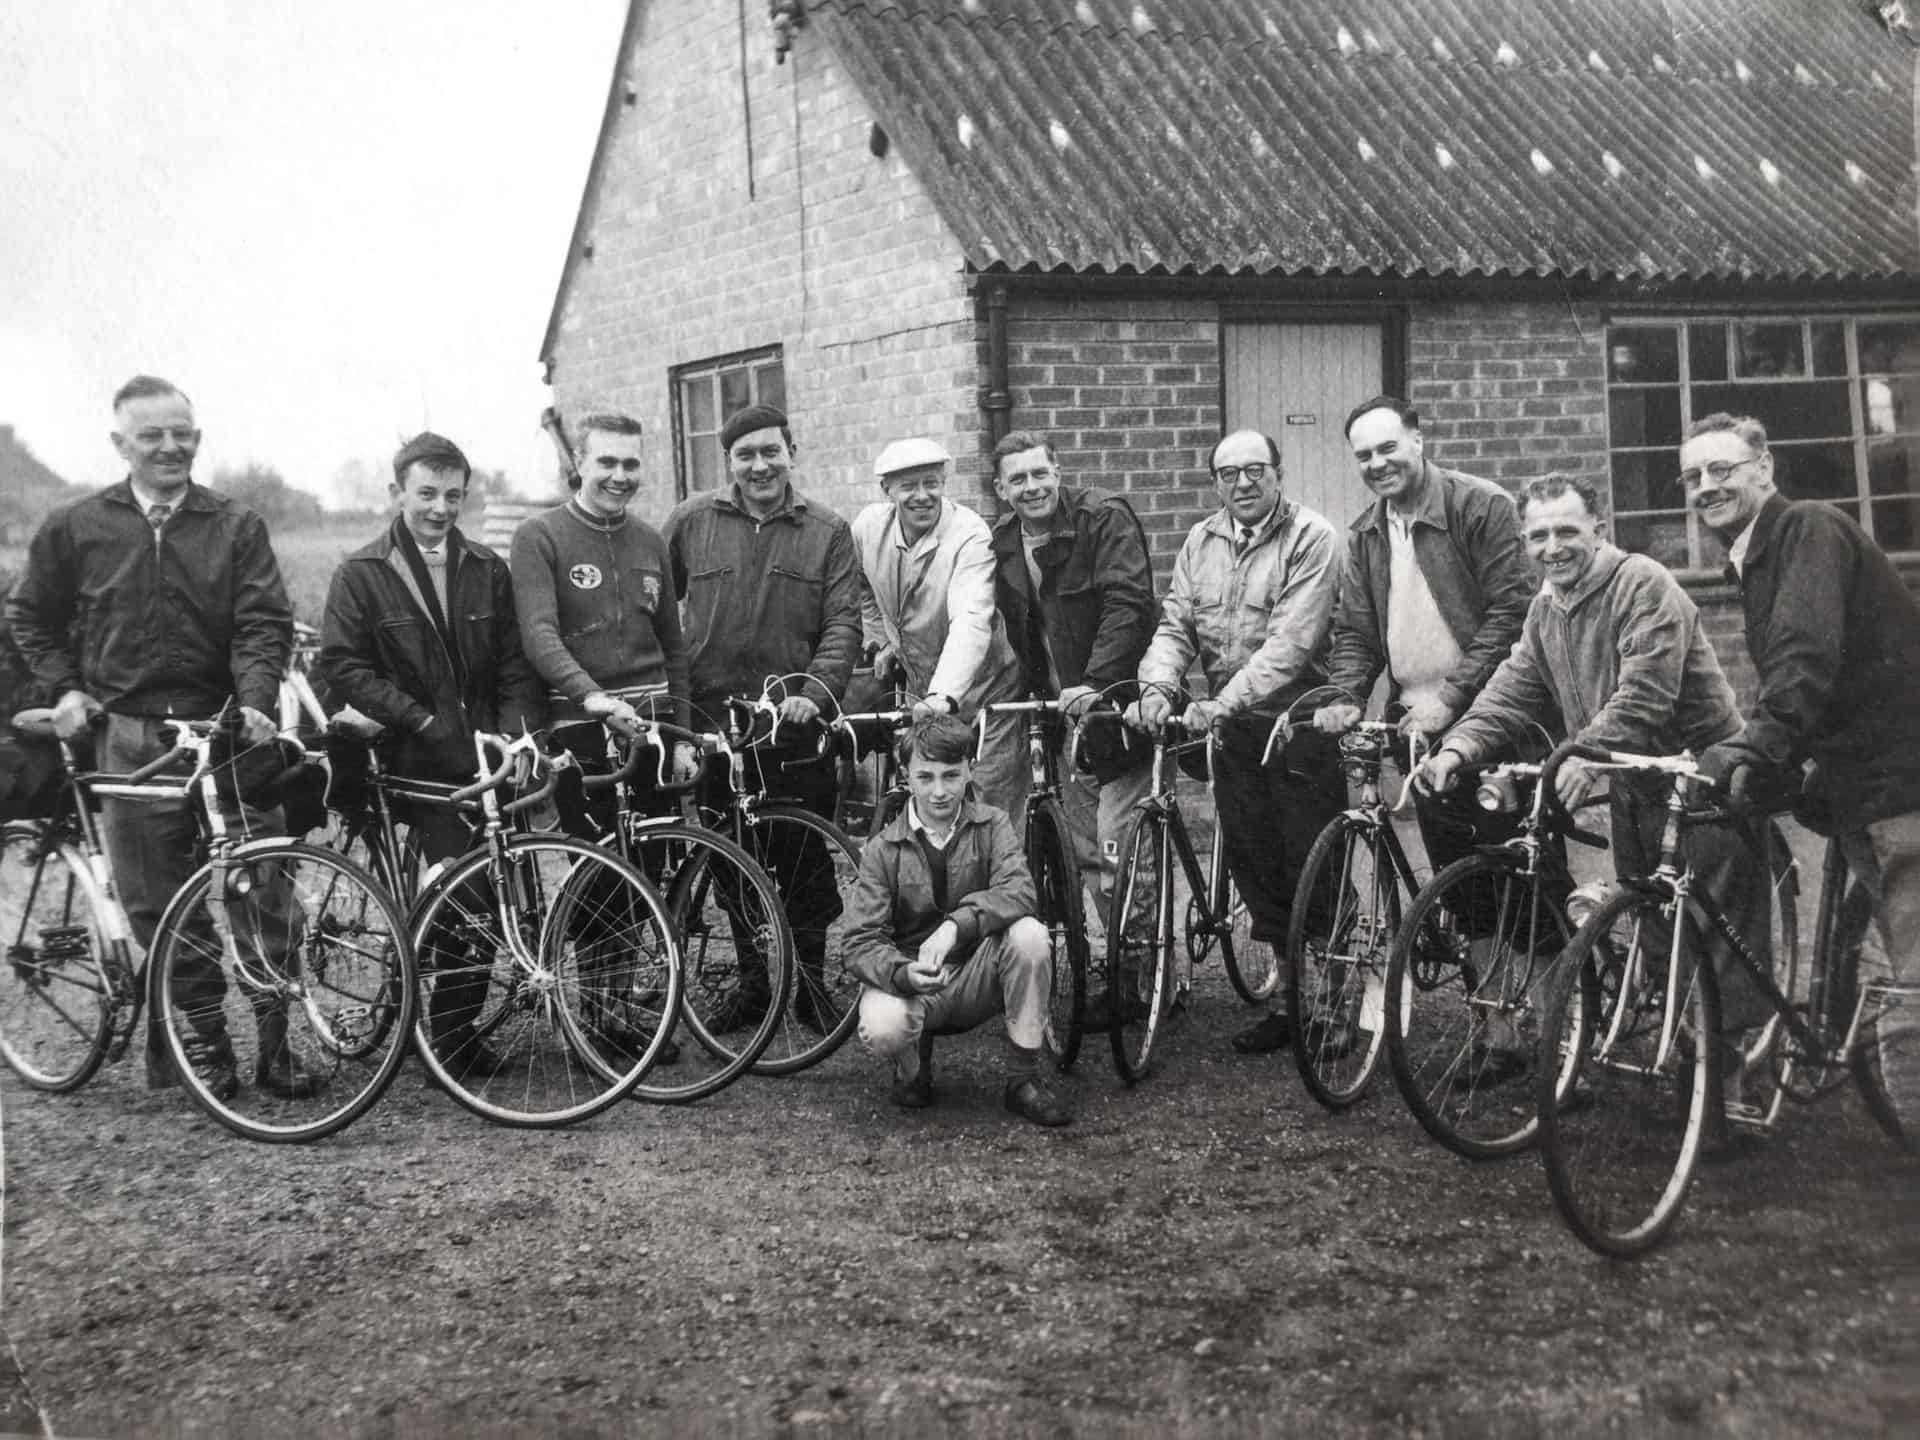 Probably Oldbury Cycling Club late 1950s. Bob Mansell is third in on left, his father Robert senior is 1st on the right riding the Falcon bike.